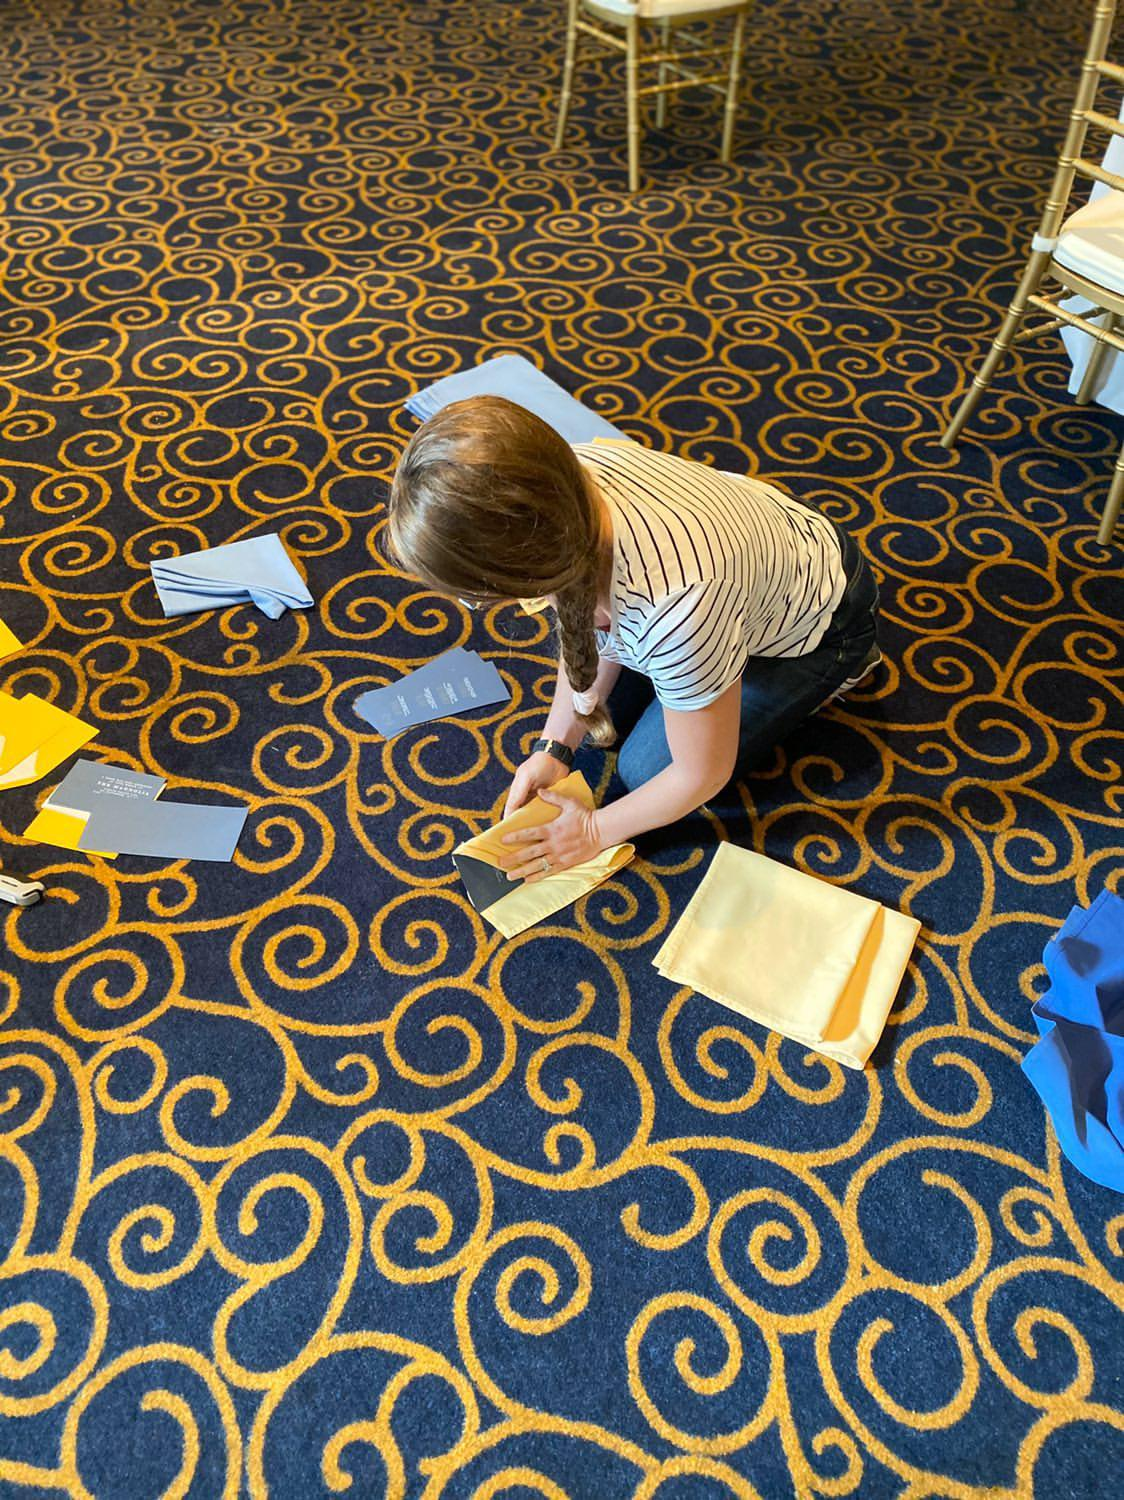 Molly (owner of Beauty Bright Design a boutique stationery design firm) folds custom designed deep blue menus in mustard fabric napkins on the floor of The Paxton Ballroom for a styled wedding shoot in Omaha NE